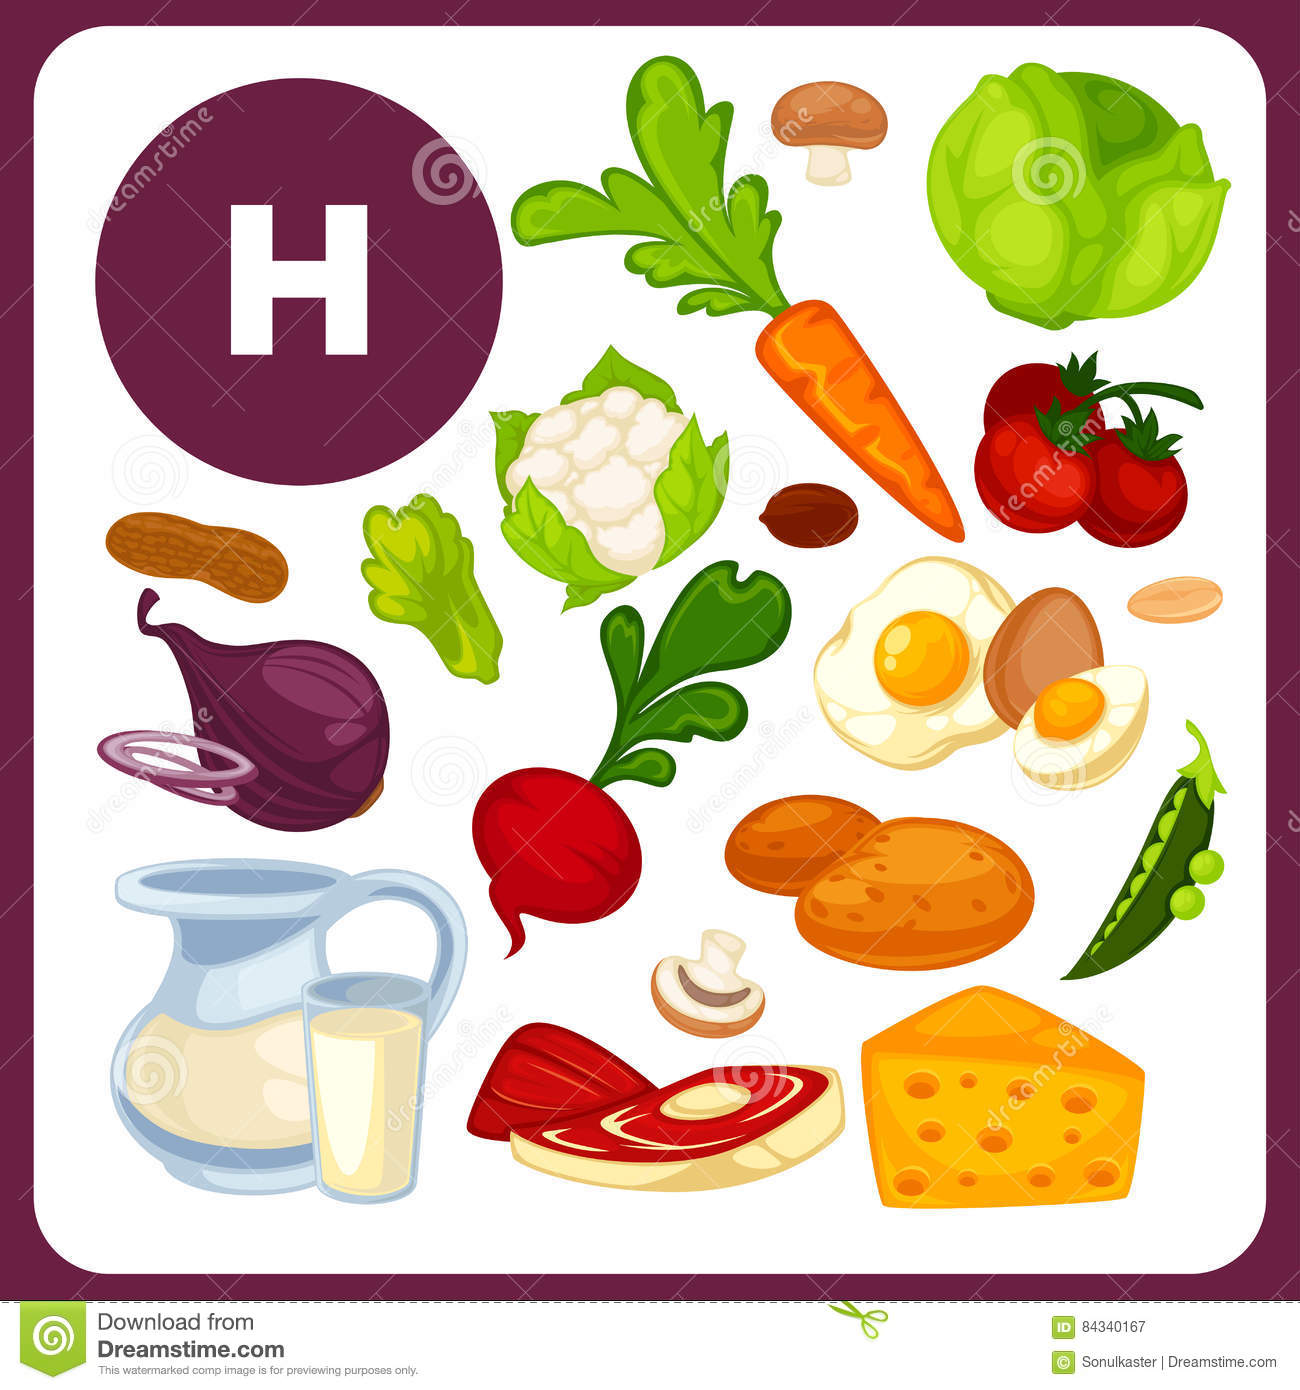 Food with vitamin H, B10 stock vector. Illustration of carrots